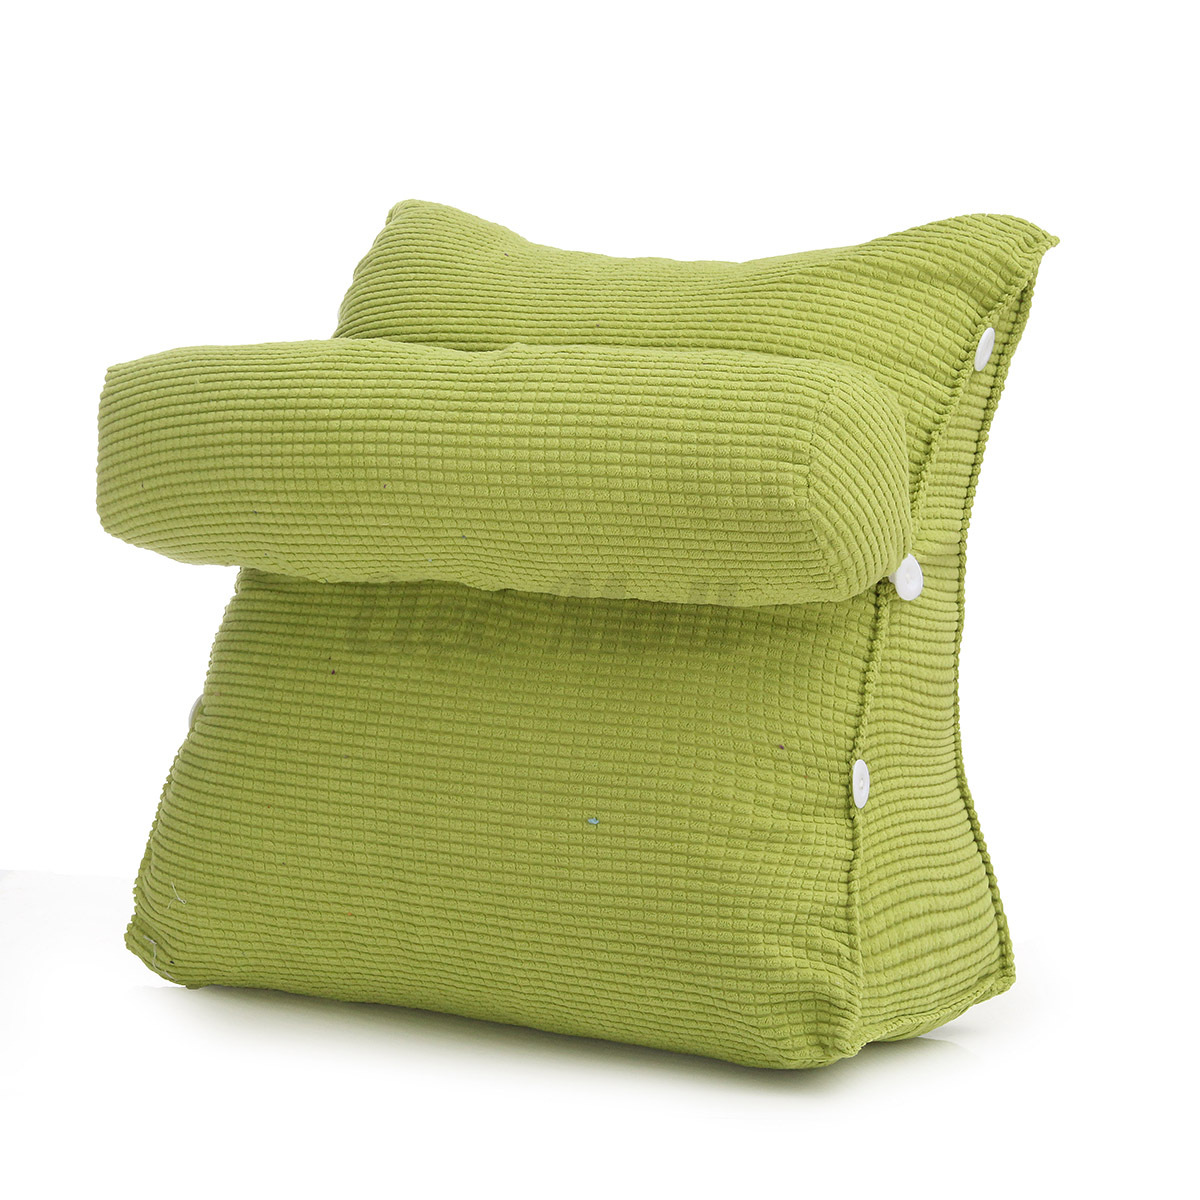 Sofa Bed Office Chair Cushion Adjustable Neck Support Back